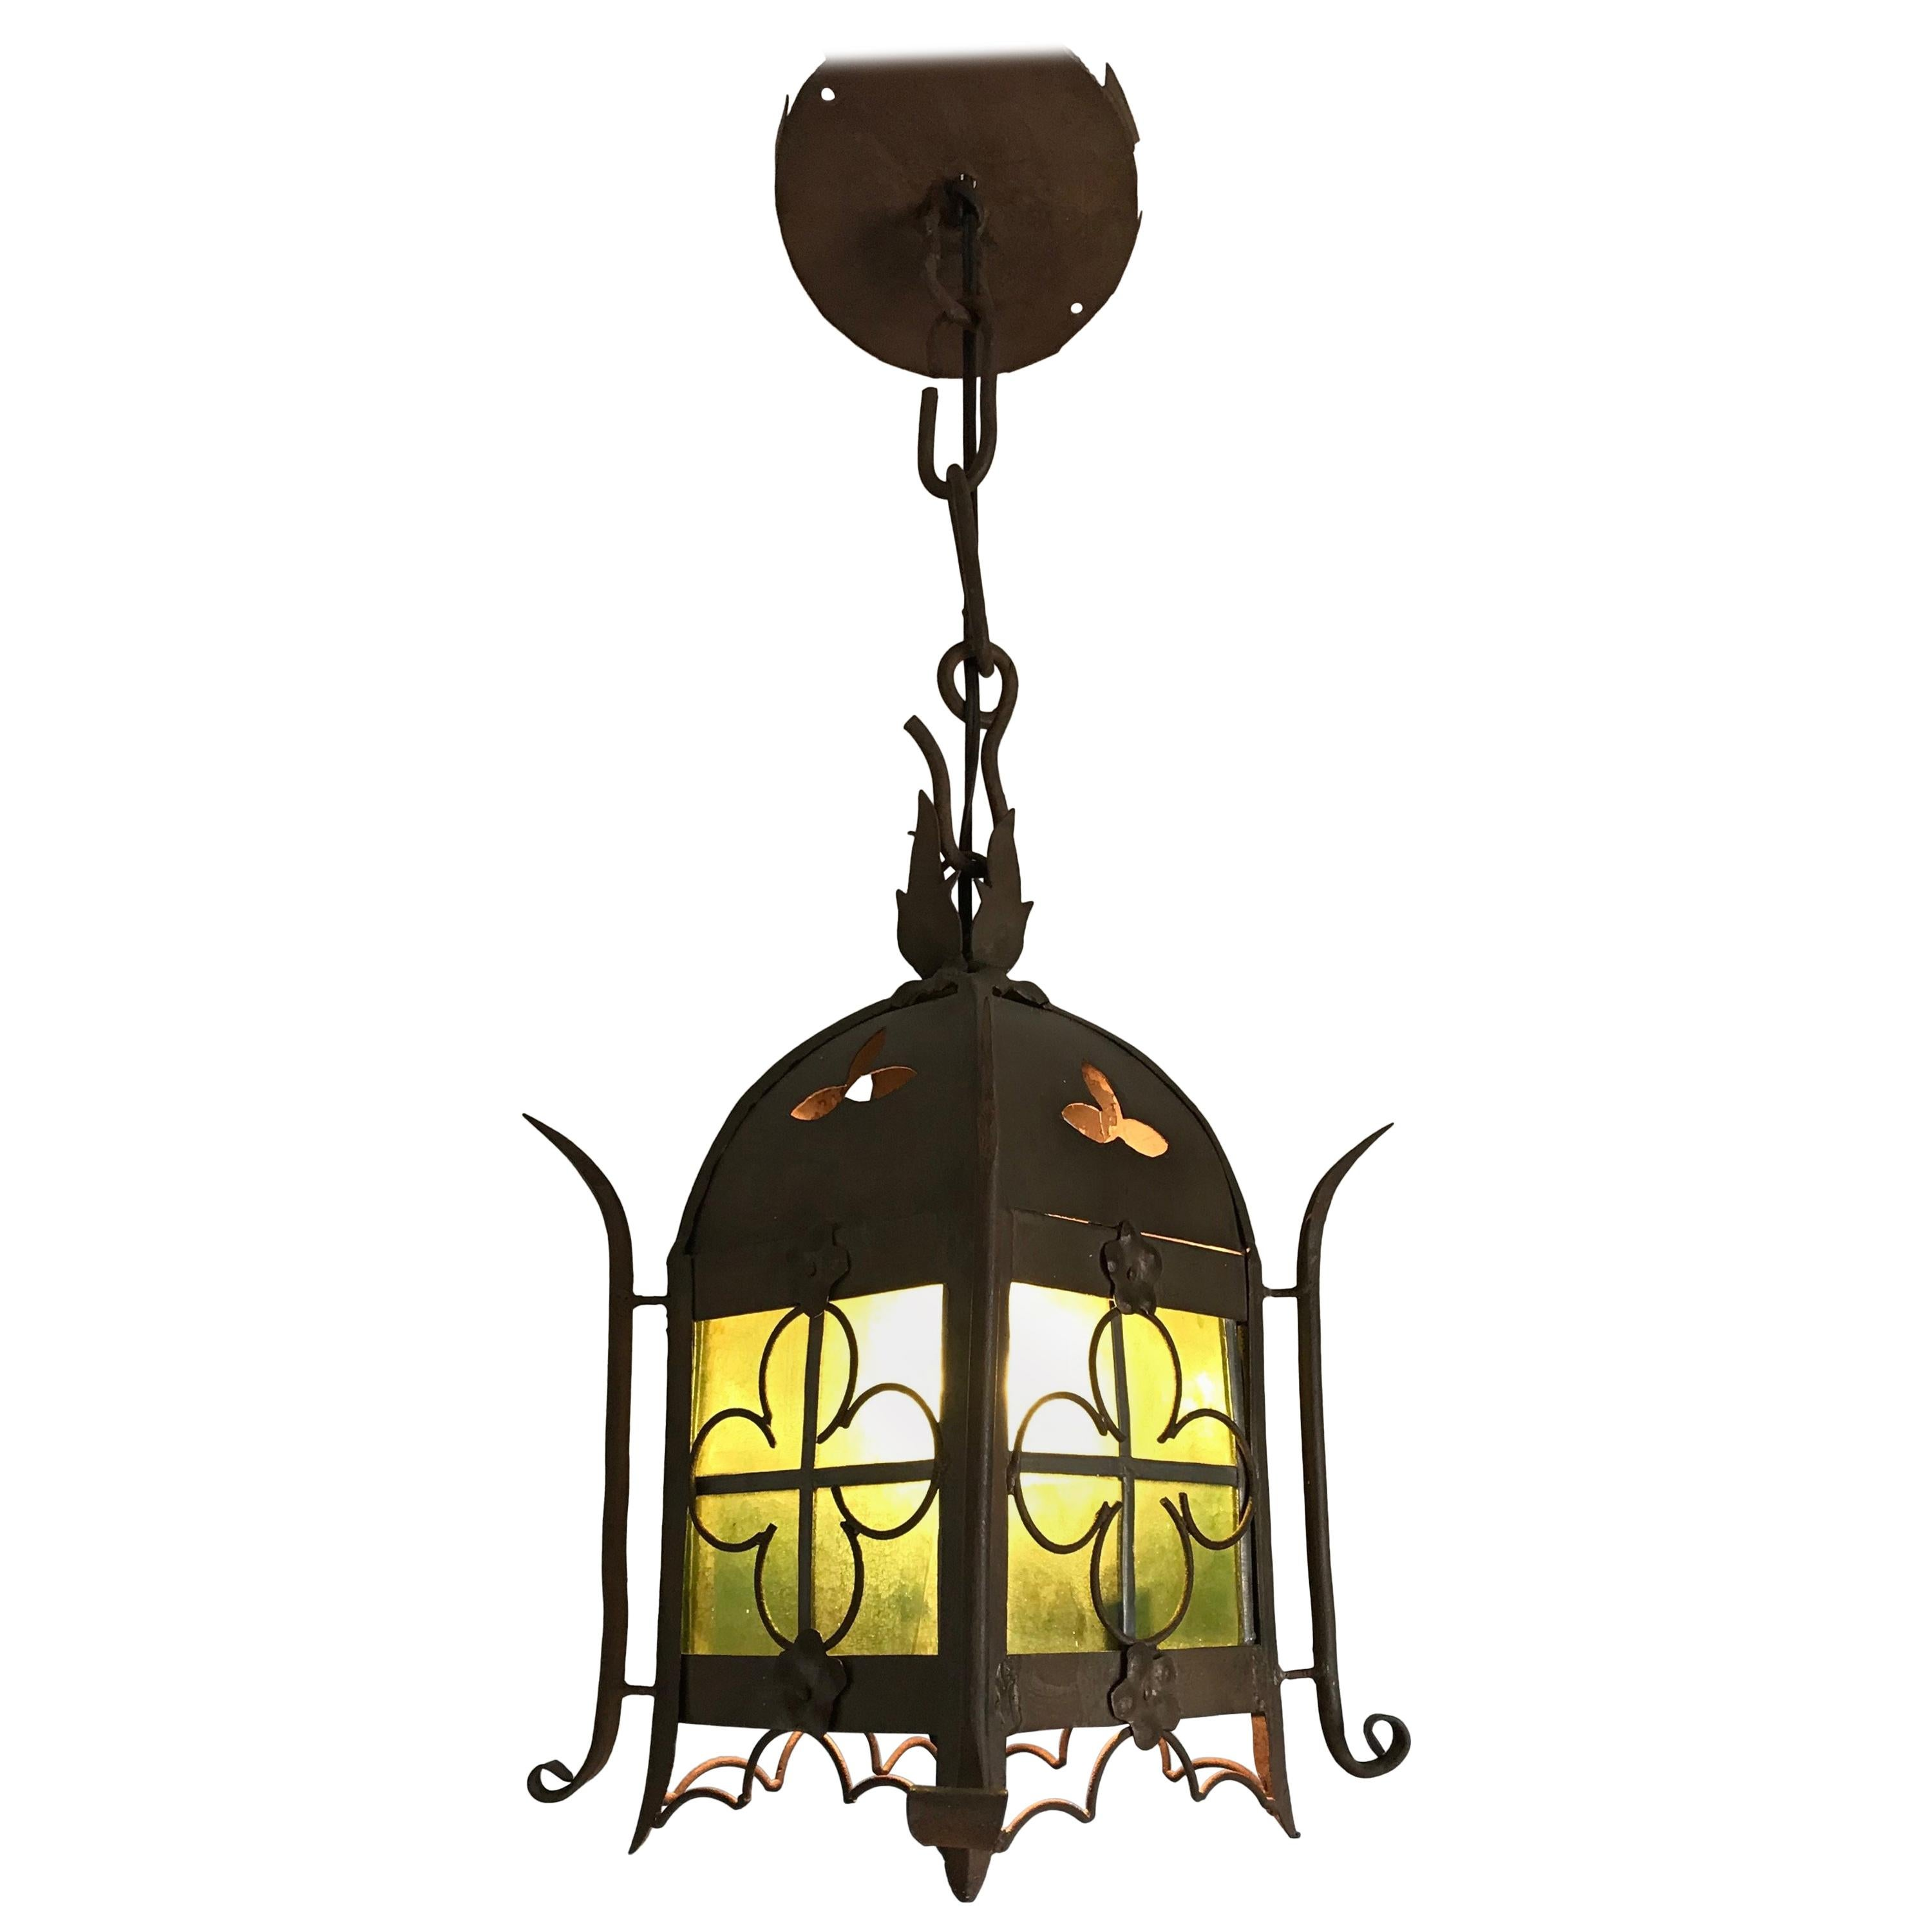 Early 1900s Gothic Revival Wrought Iron and Stained Glass Lantern / Fixture